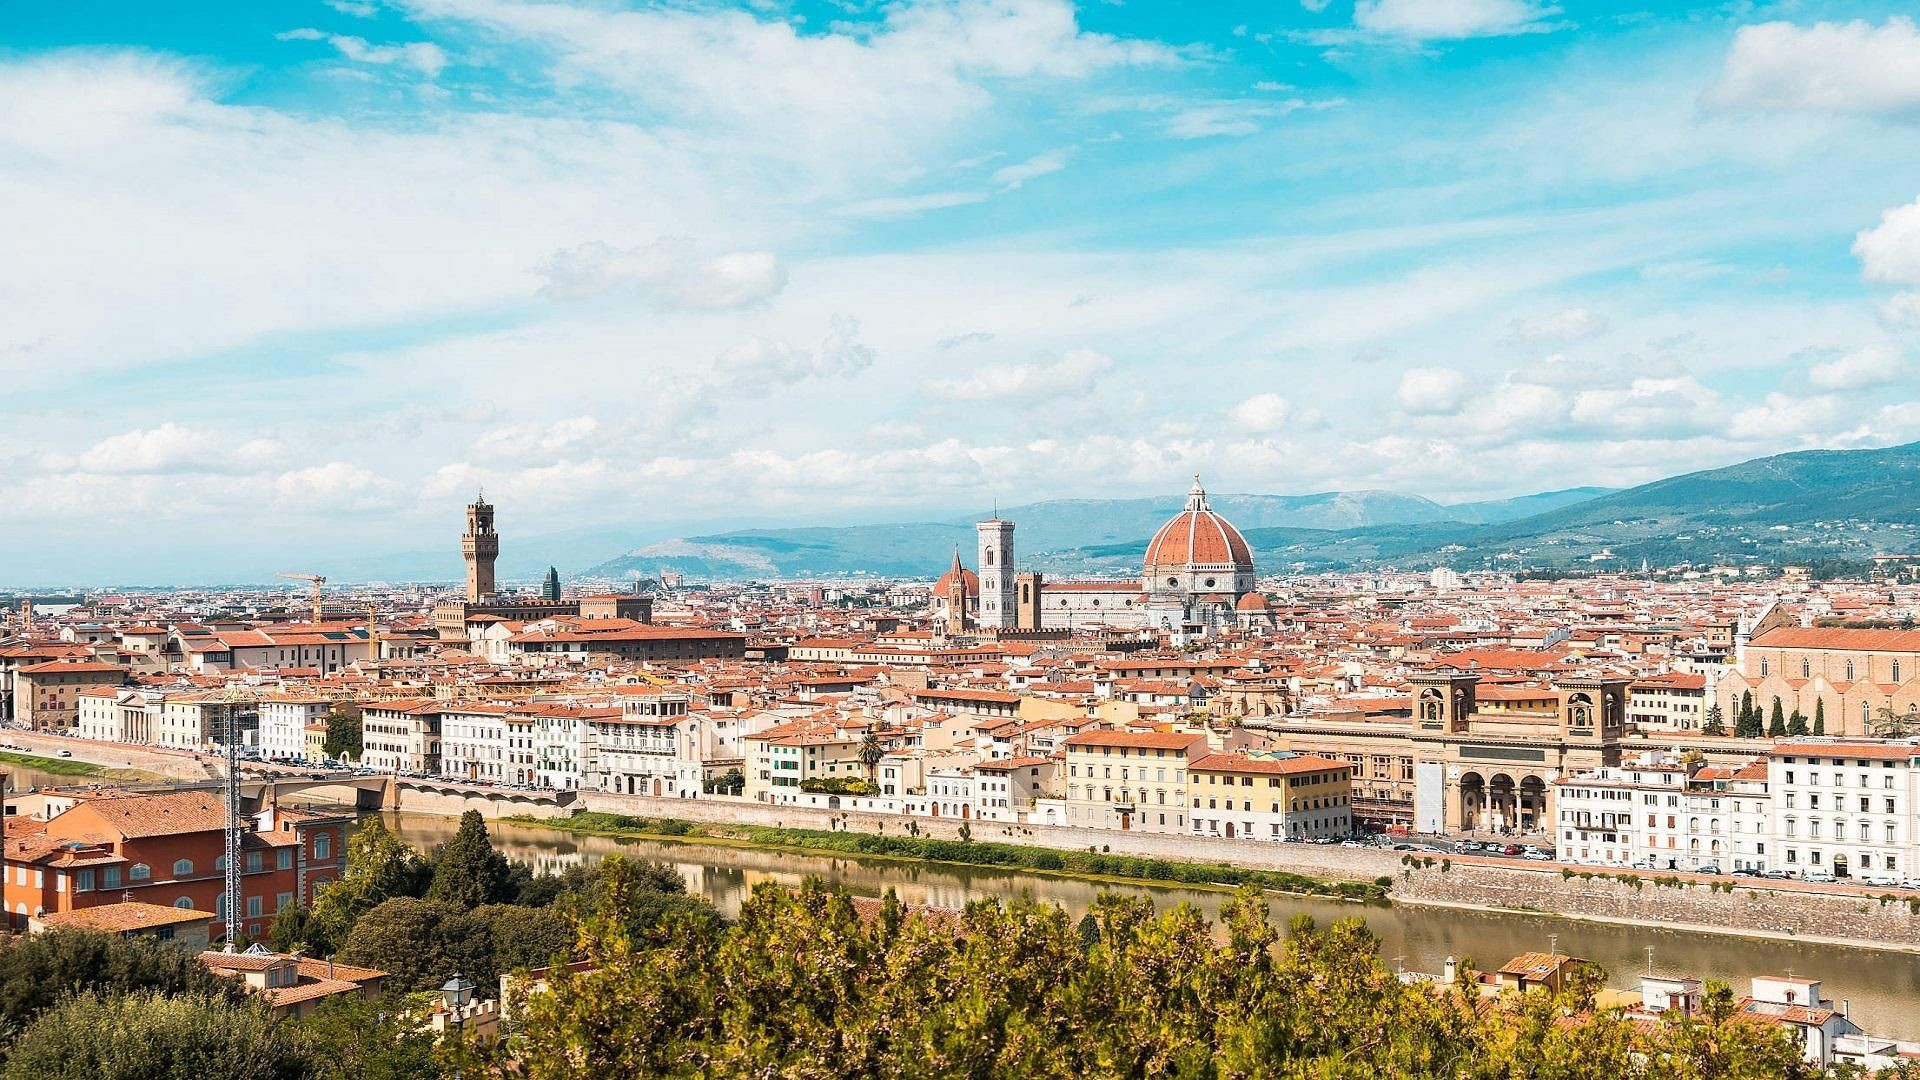 1920x1080 #FLORENCE FIRENZE TUSCANY [1920X1080] #Hdwallpaper #wallpaper #image